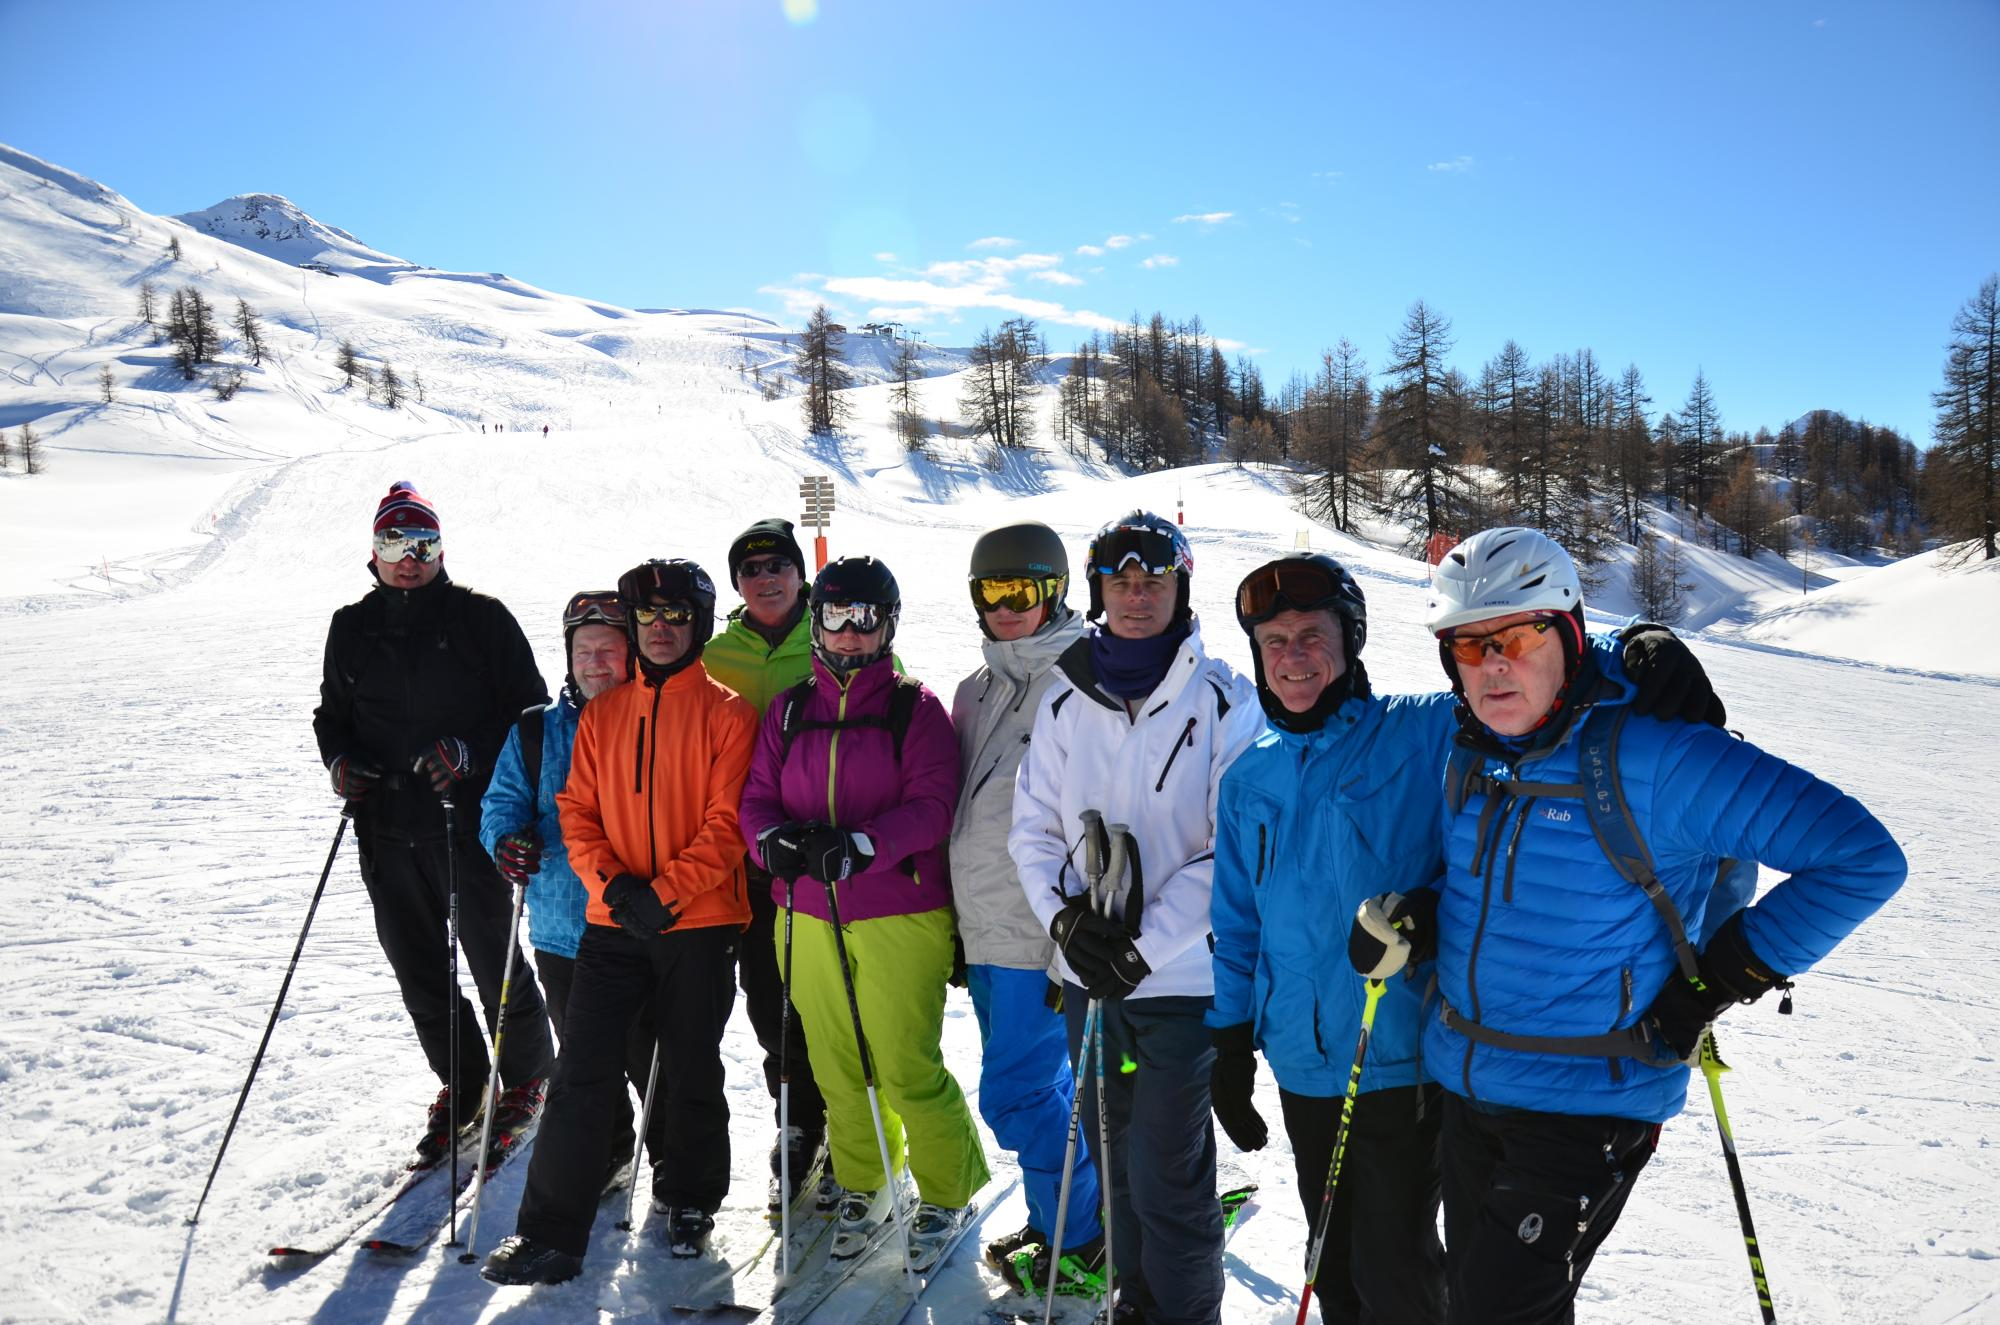 Ski Club group holiday at Courchevel